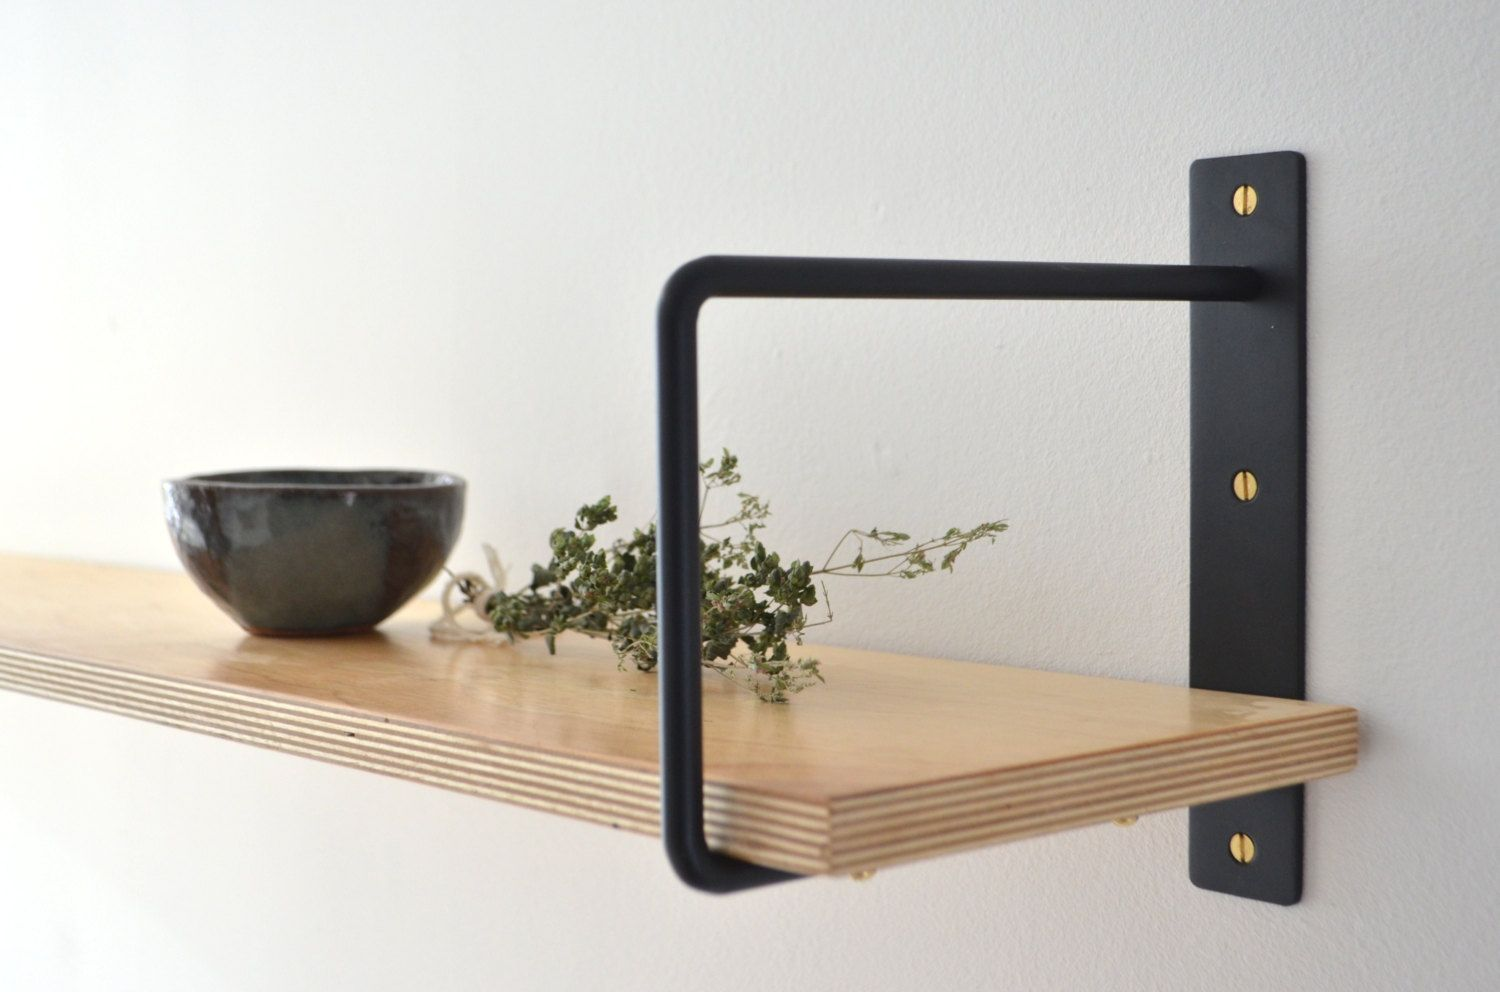 Pin By Jiahong Liang On Projects Minimalist Shelves Shelf Brackets Shelves